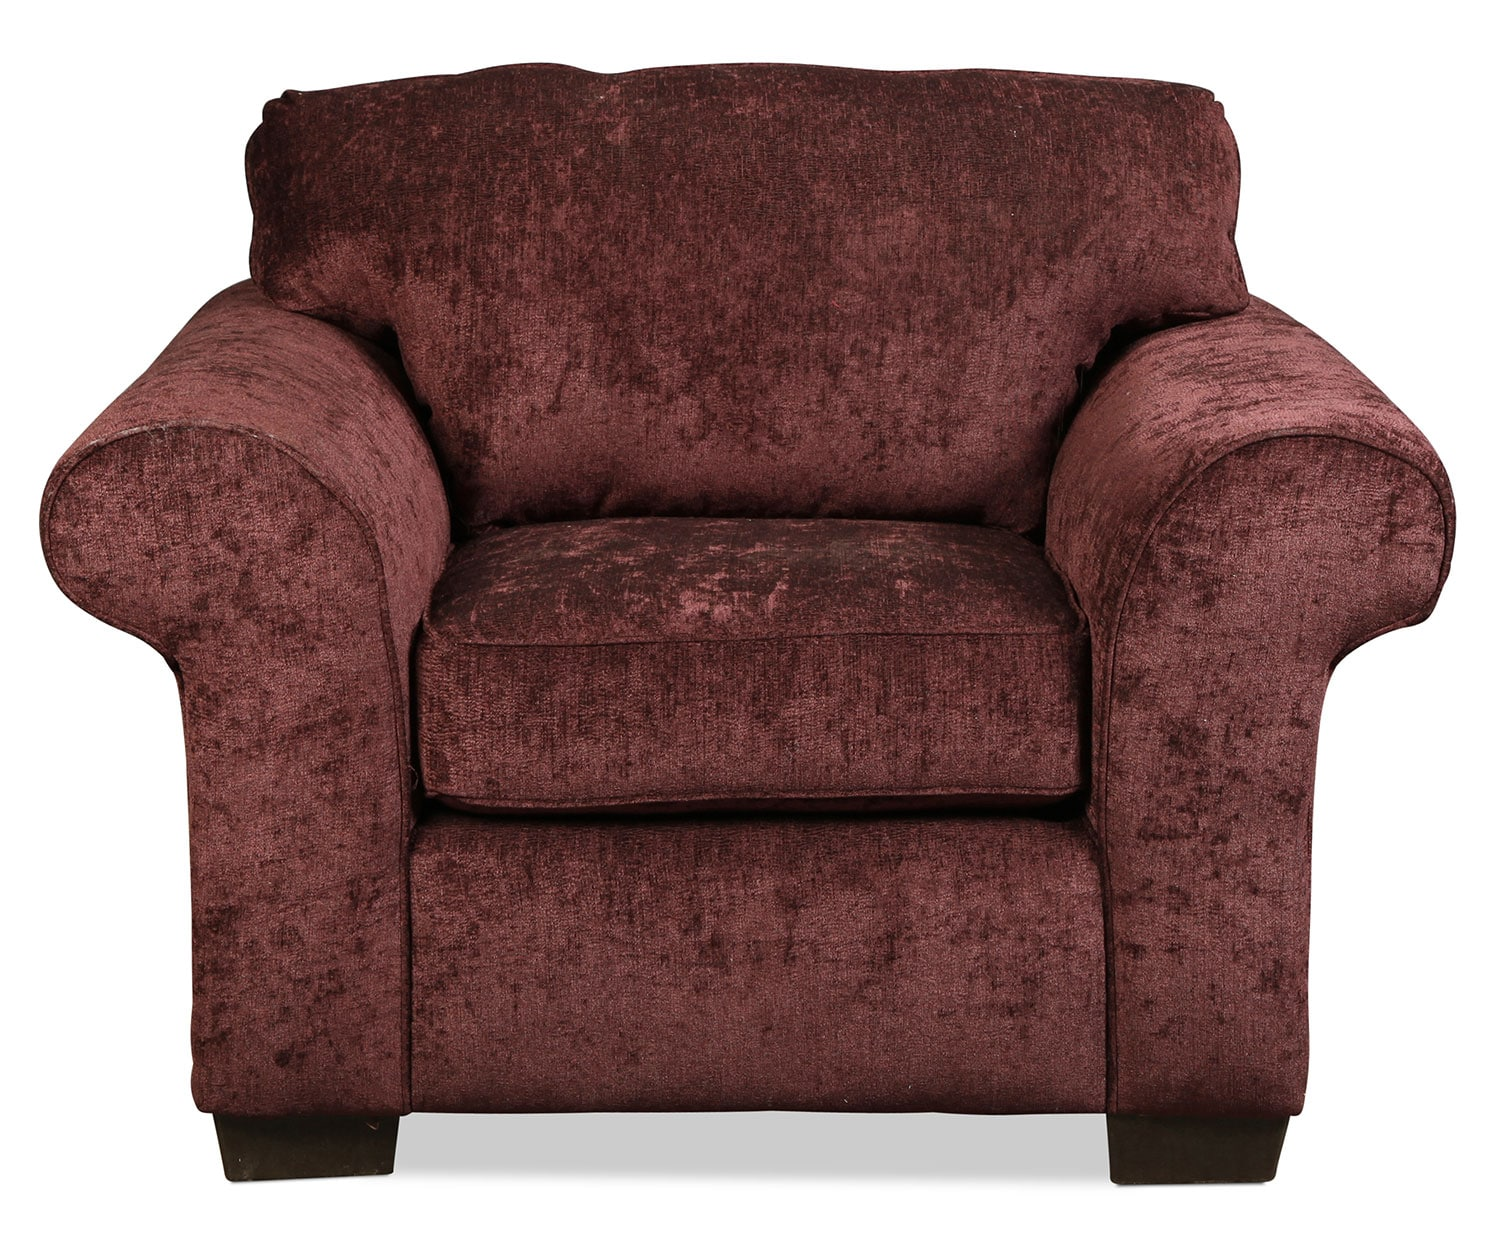 Living Room Furniture - Roseville Chair - Elderberry